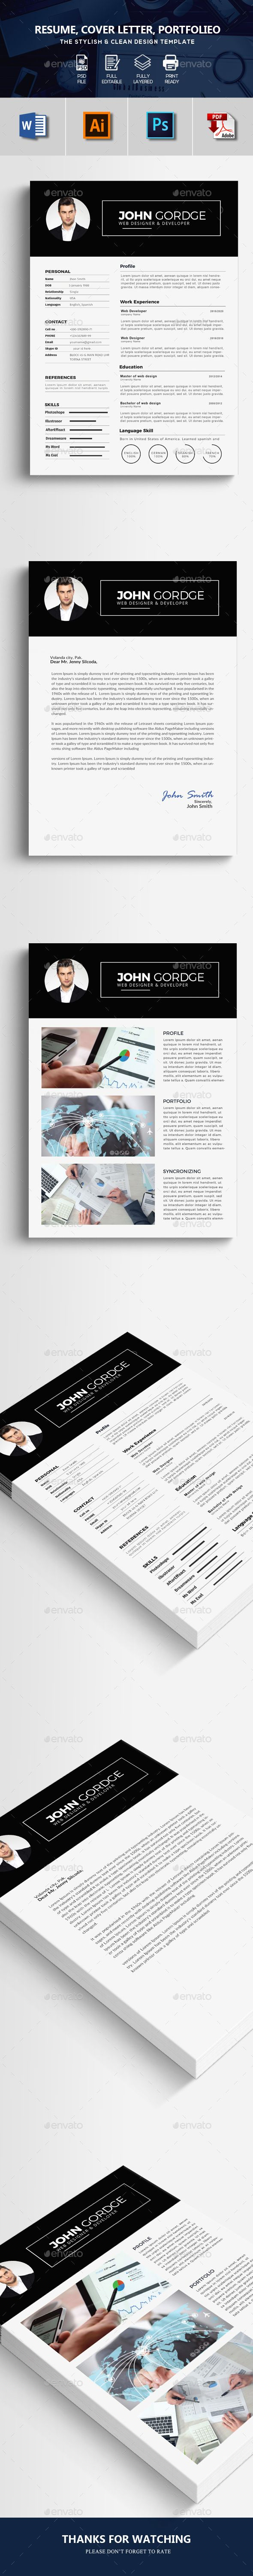 Professional Resume #modern resume #cv clean  • Download here → https://graphicriver.net/item/professional-resume/20612573?ref=pxcr